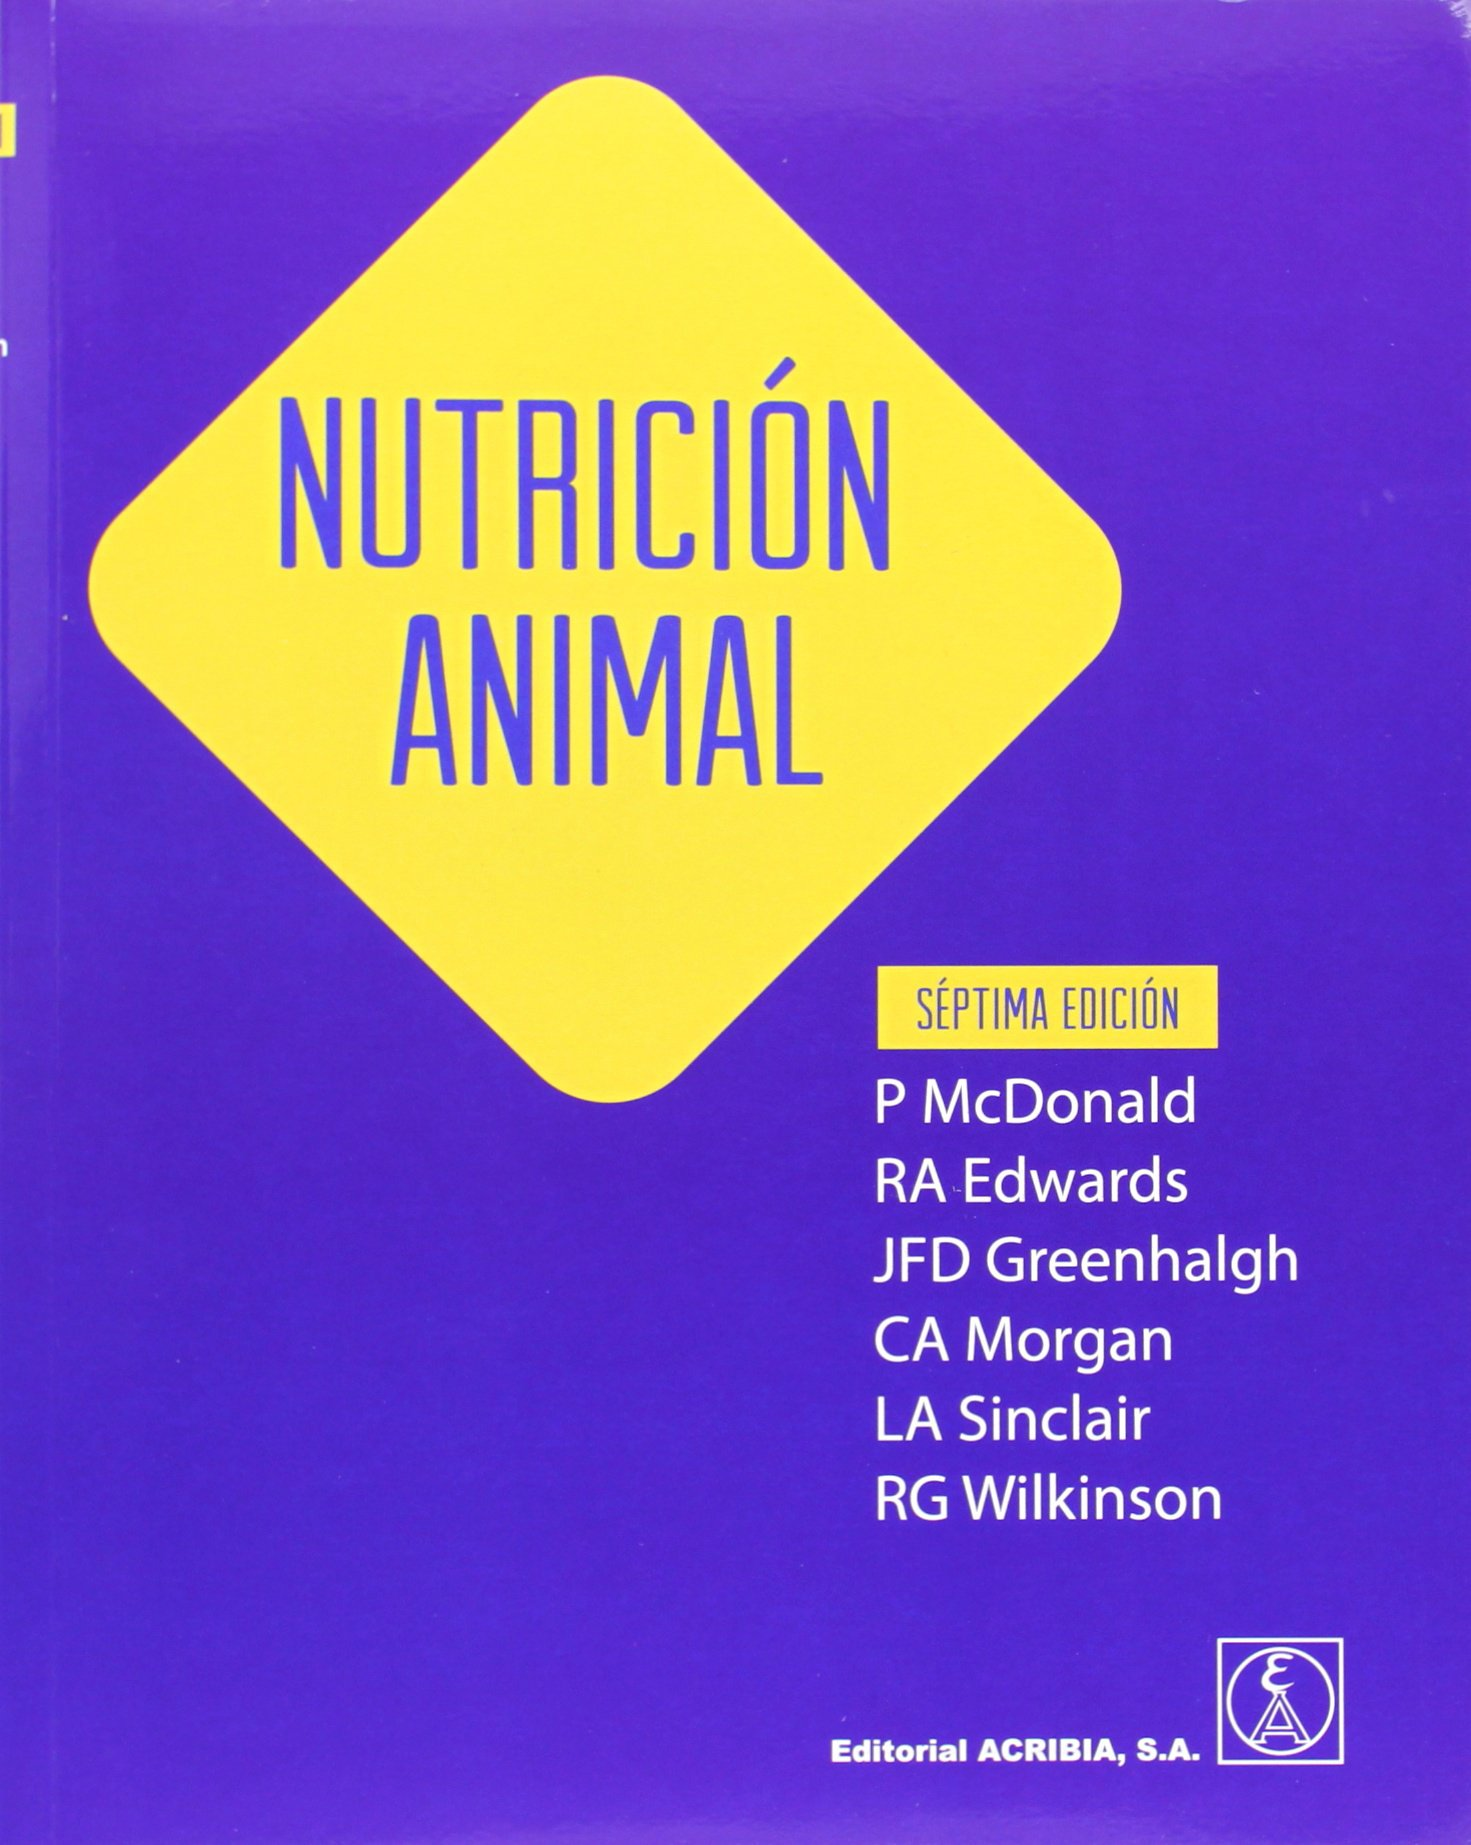 Nutrición animal: Amazon.es: Peter McDonald, Rafael Sanz Arias: Libros